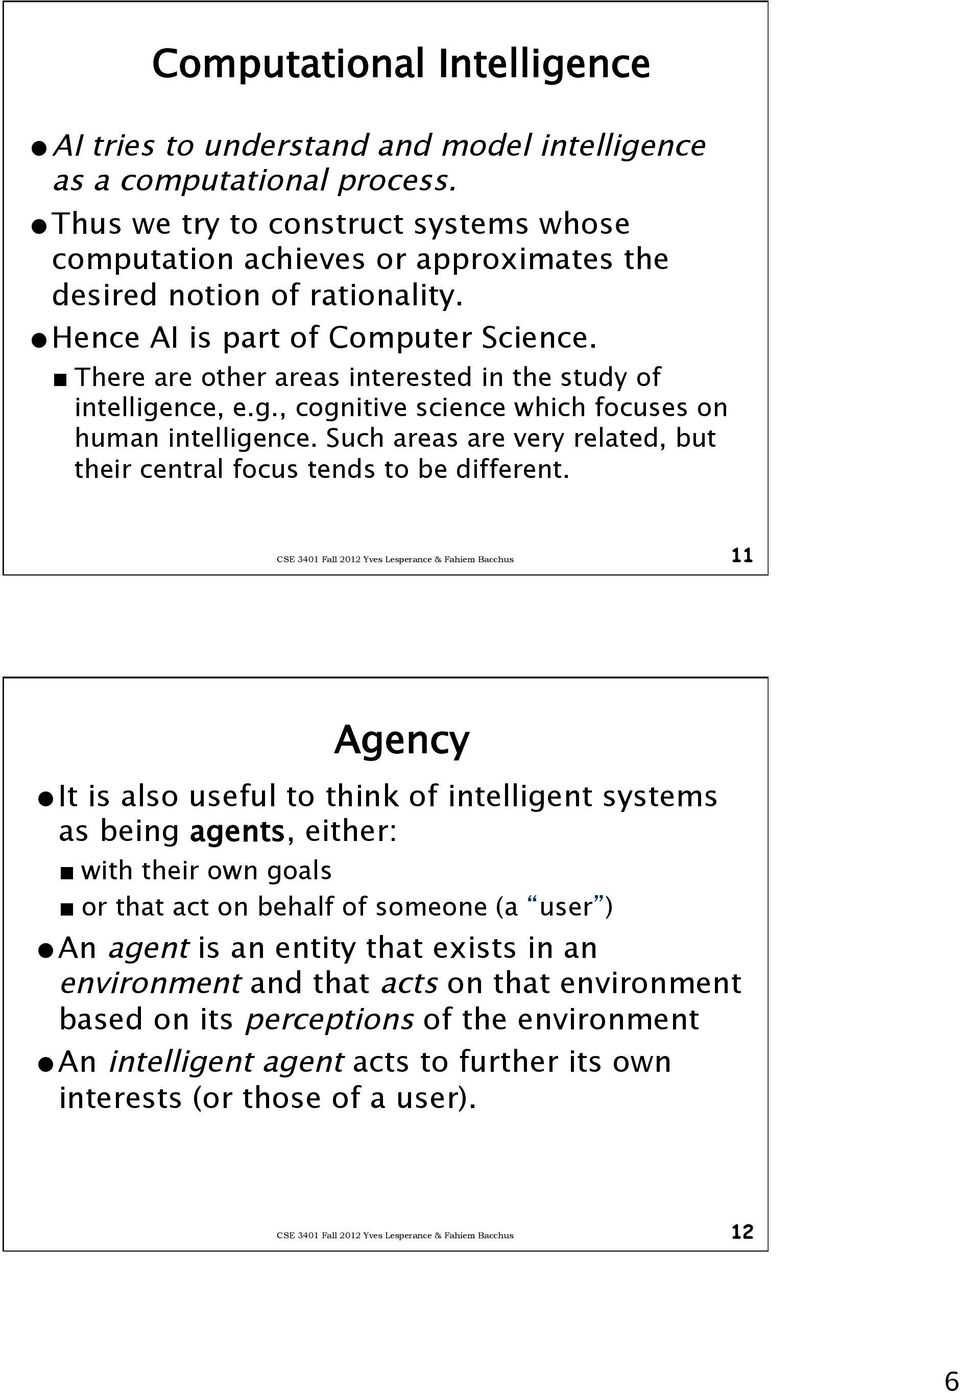 There are other areas interested in the study of intelligence, e.g., cognitive science which focuses on human intelligence. Such areas are very related, but their central focus tends to be different.